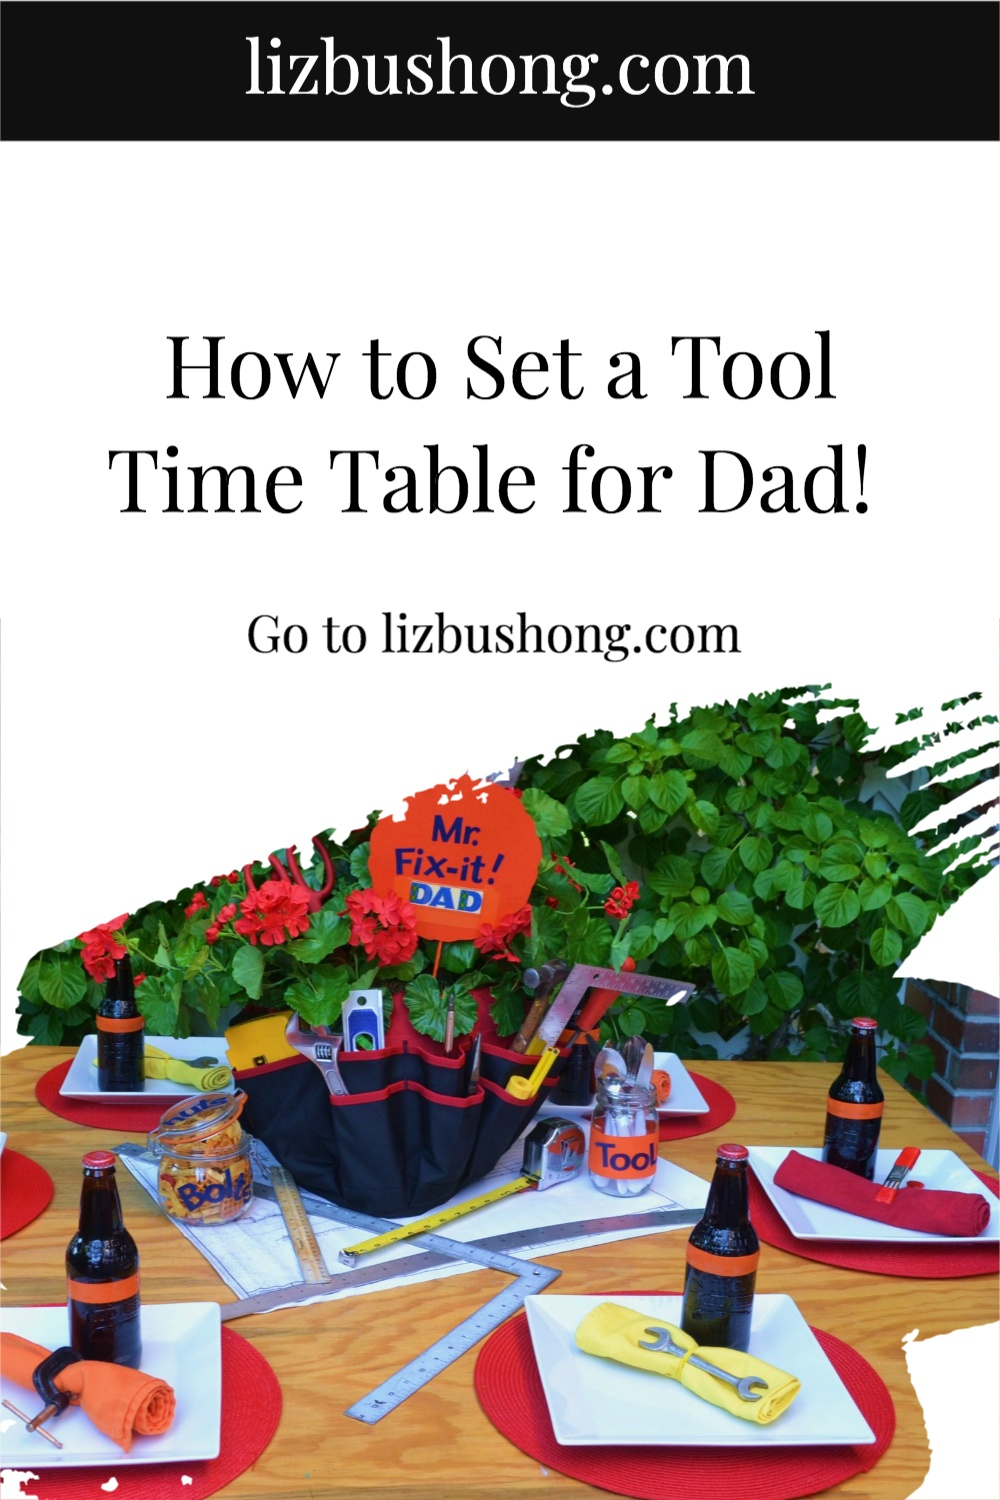 How to set a tool time table for dad lizbushong.com